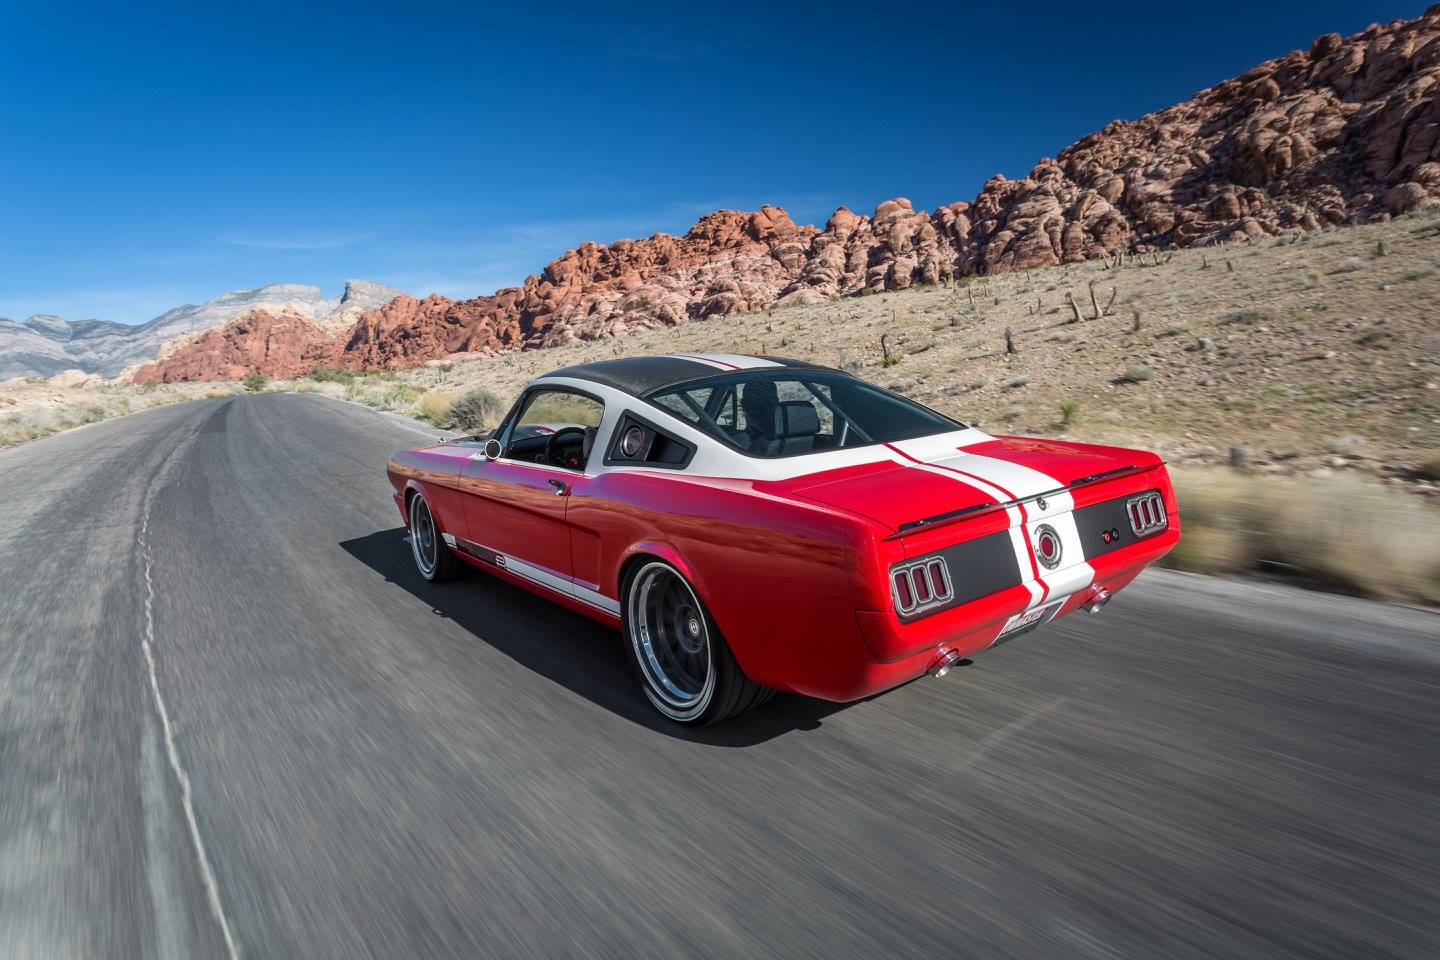 Ringbrothers 1965 SPLITR Mustang at the Red Rock Canyon ...